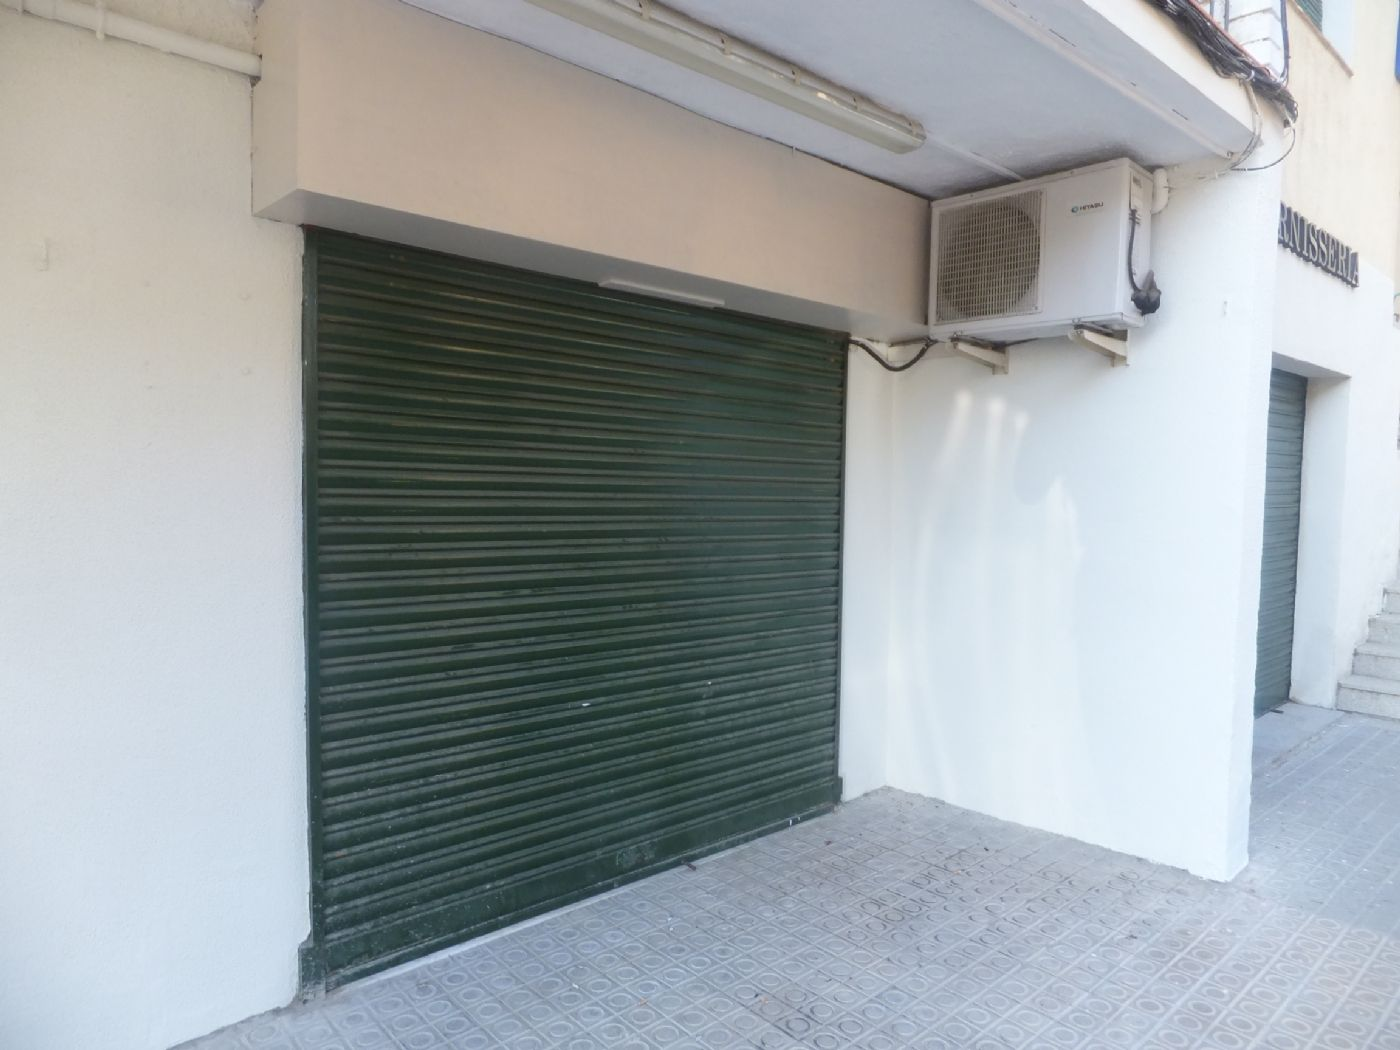 Rent Business premise  Zona alta. Local comercial zona alta